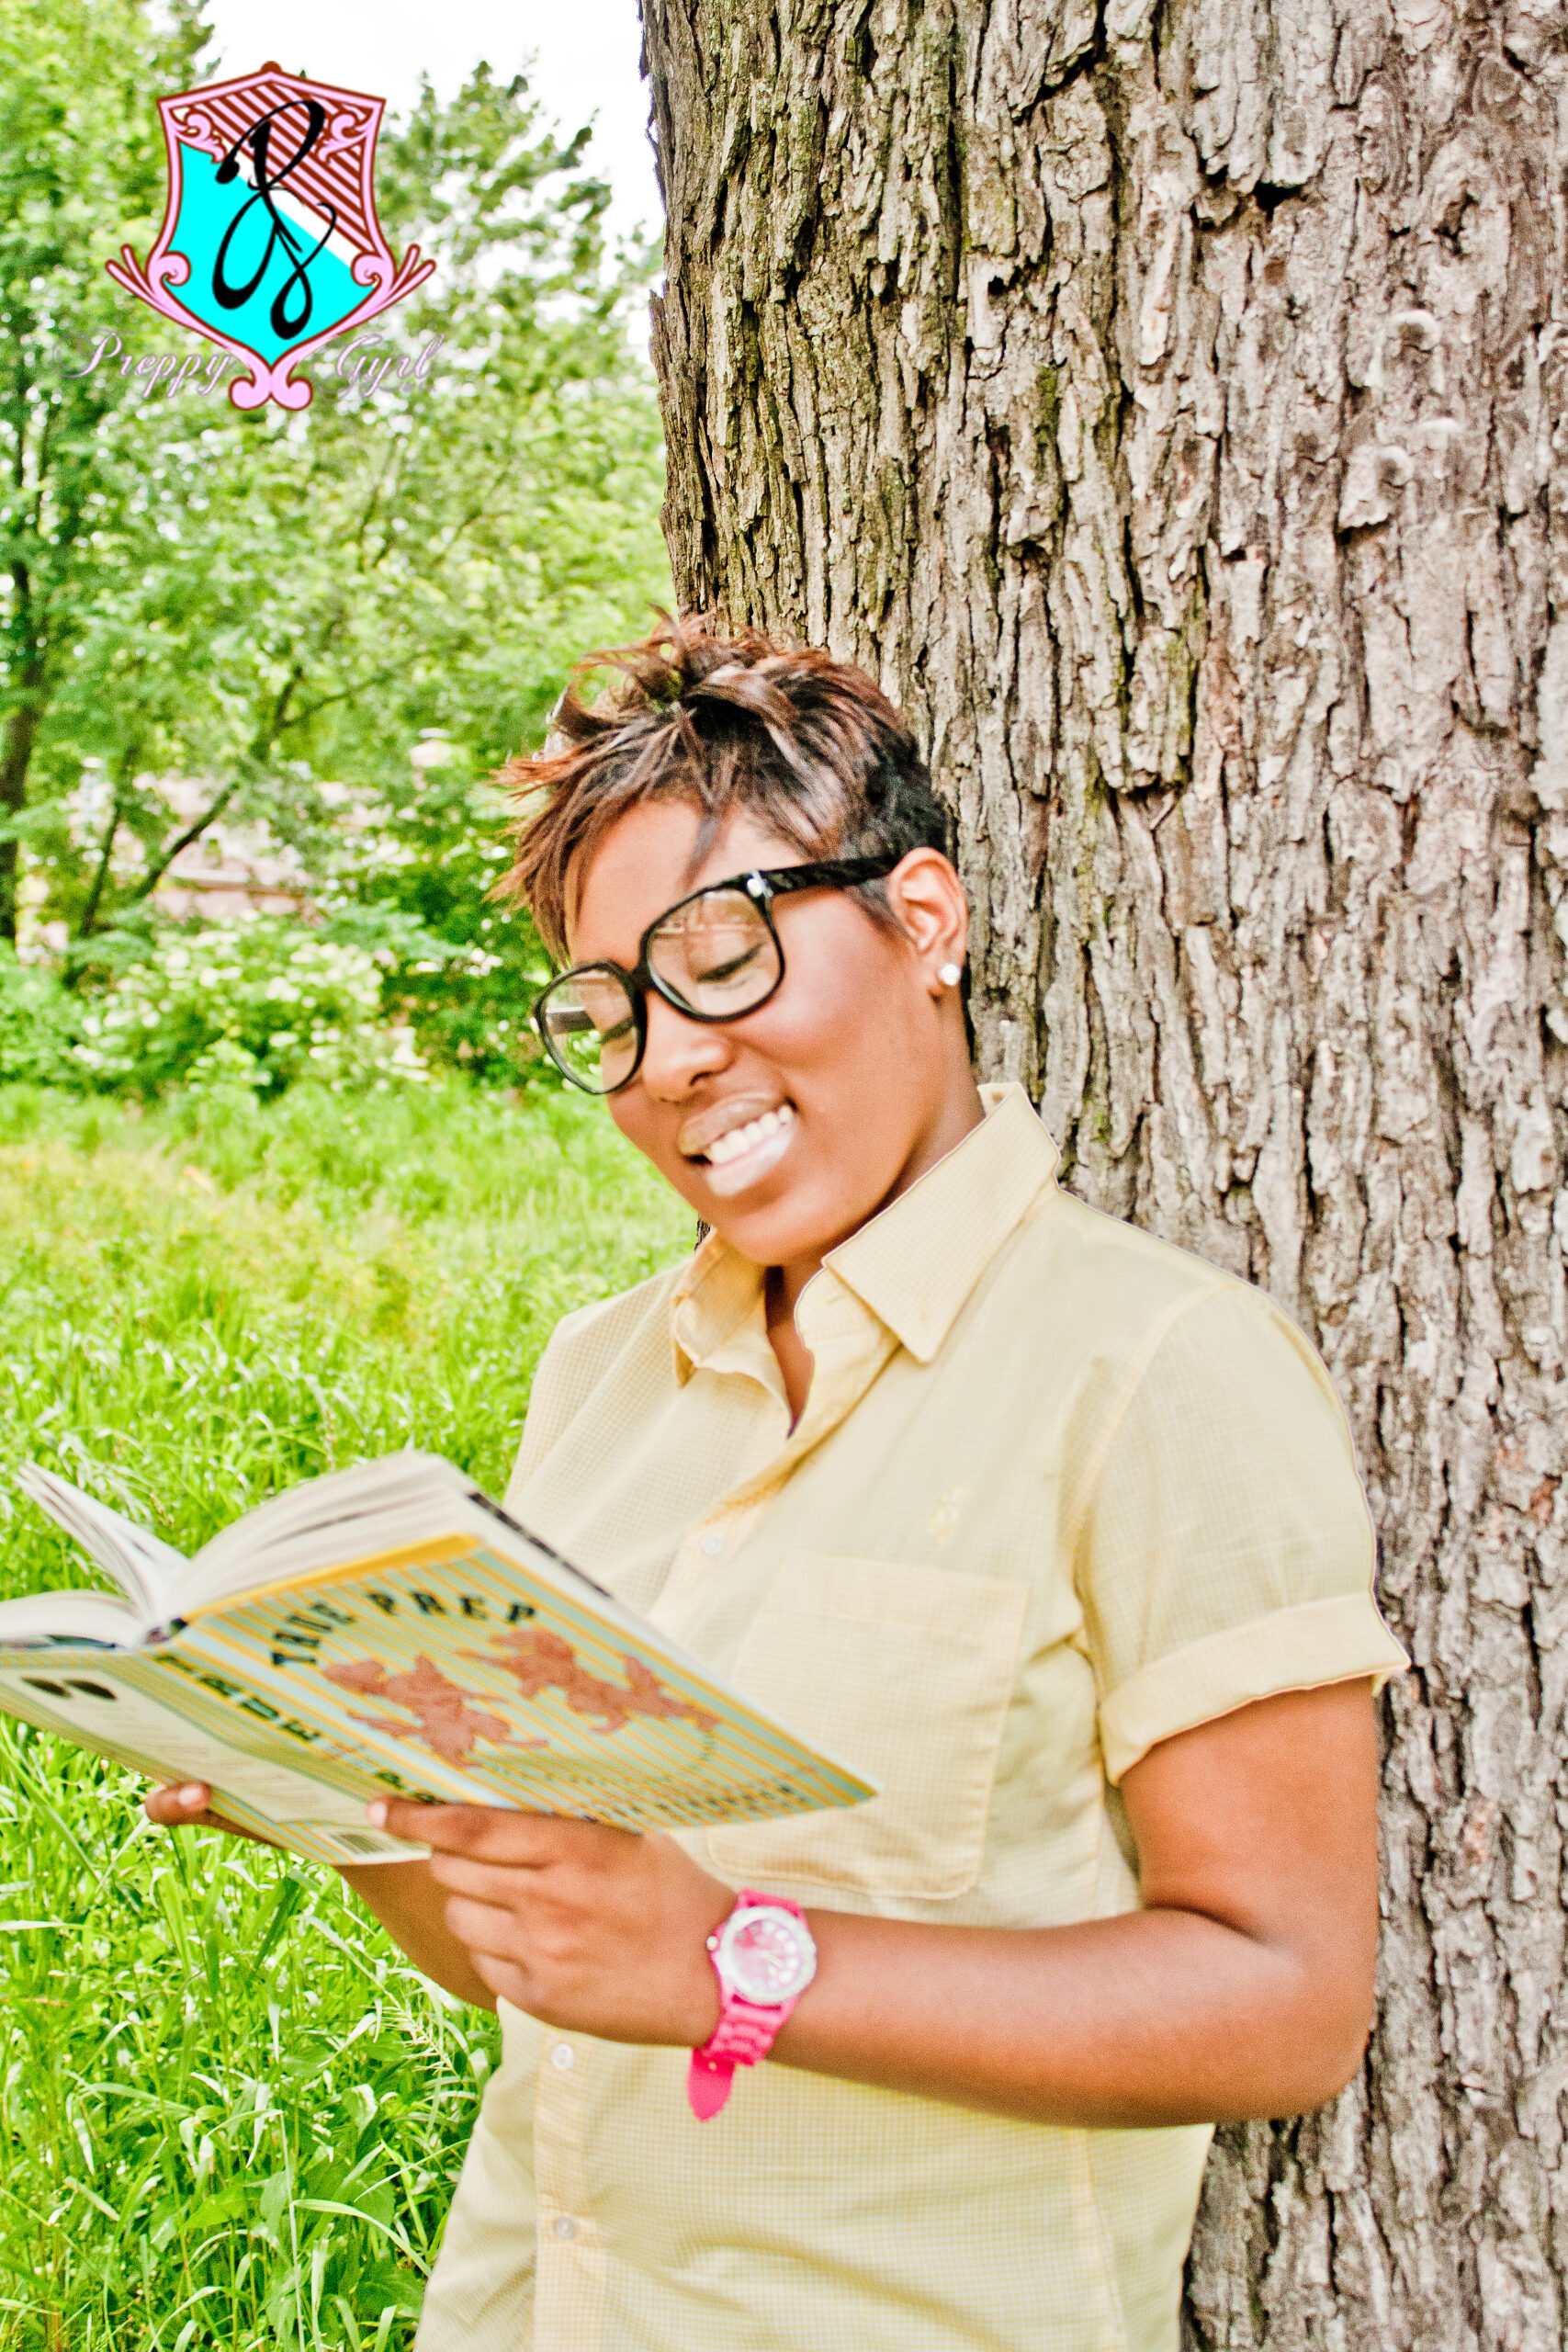 girl with glasses and yellow shirt standing agent a tree. reading a book, the preppy girl. logo hovers above her head